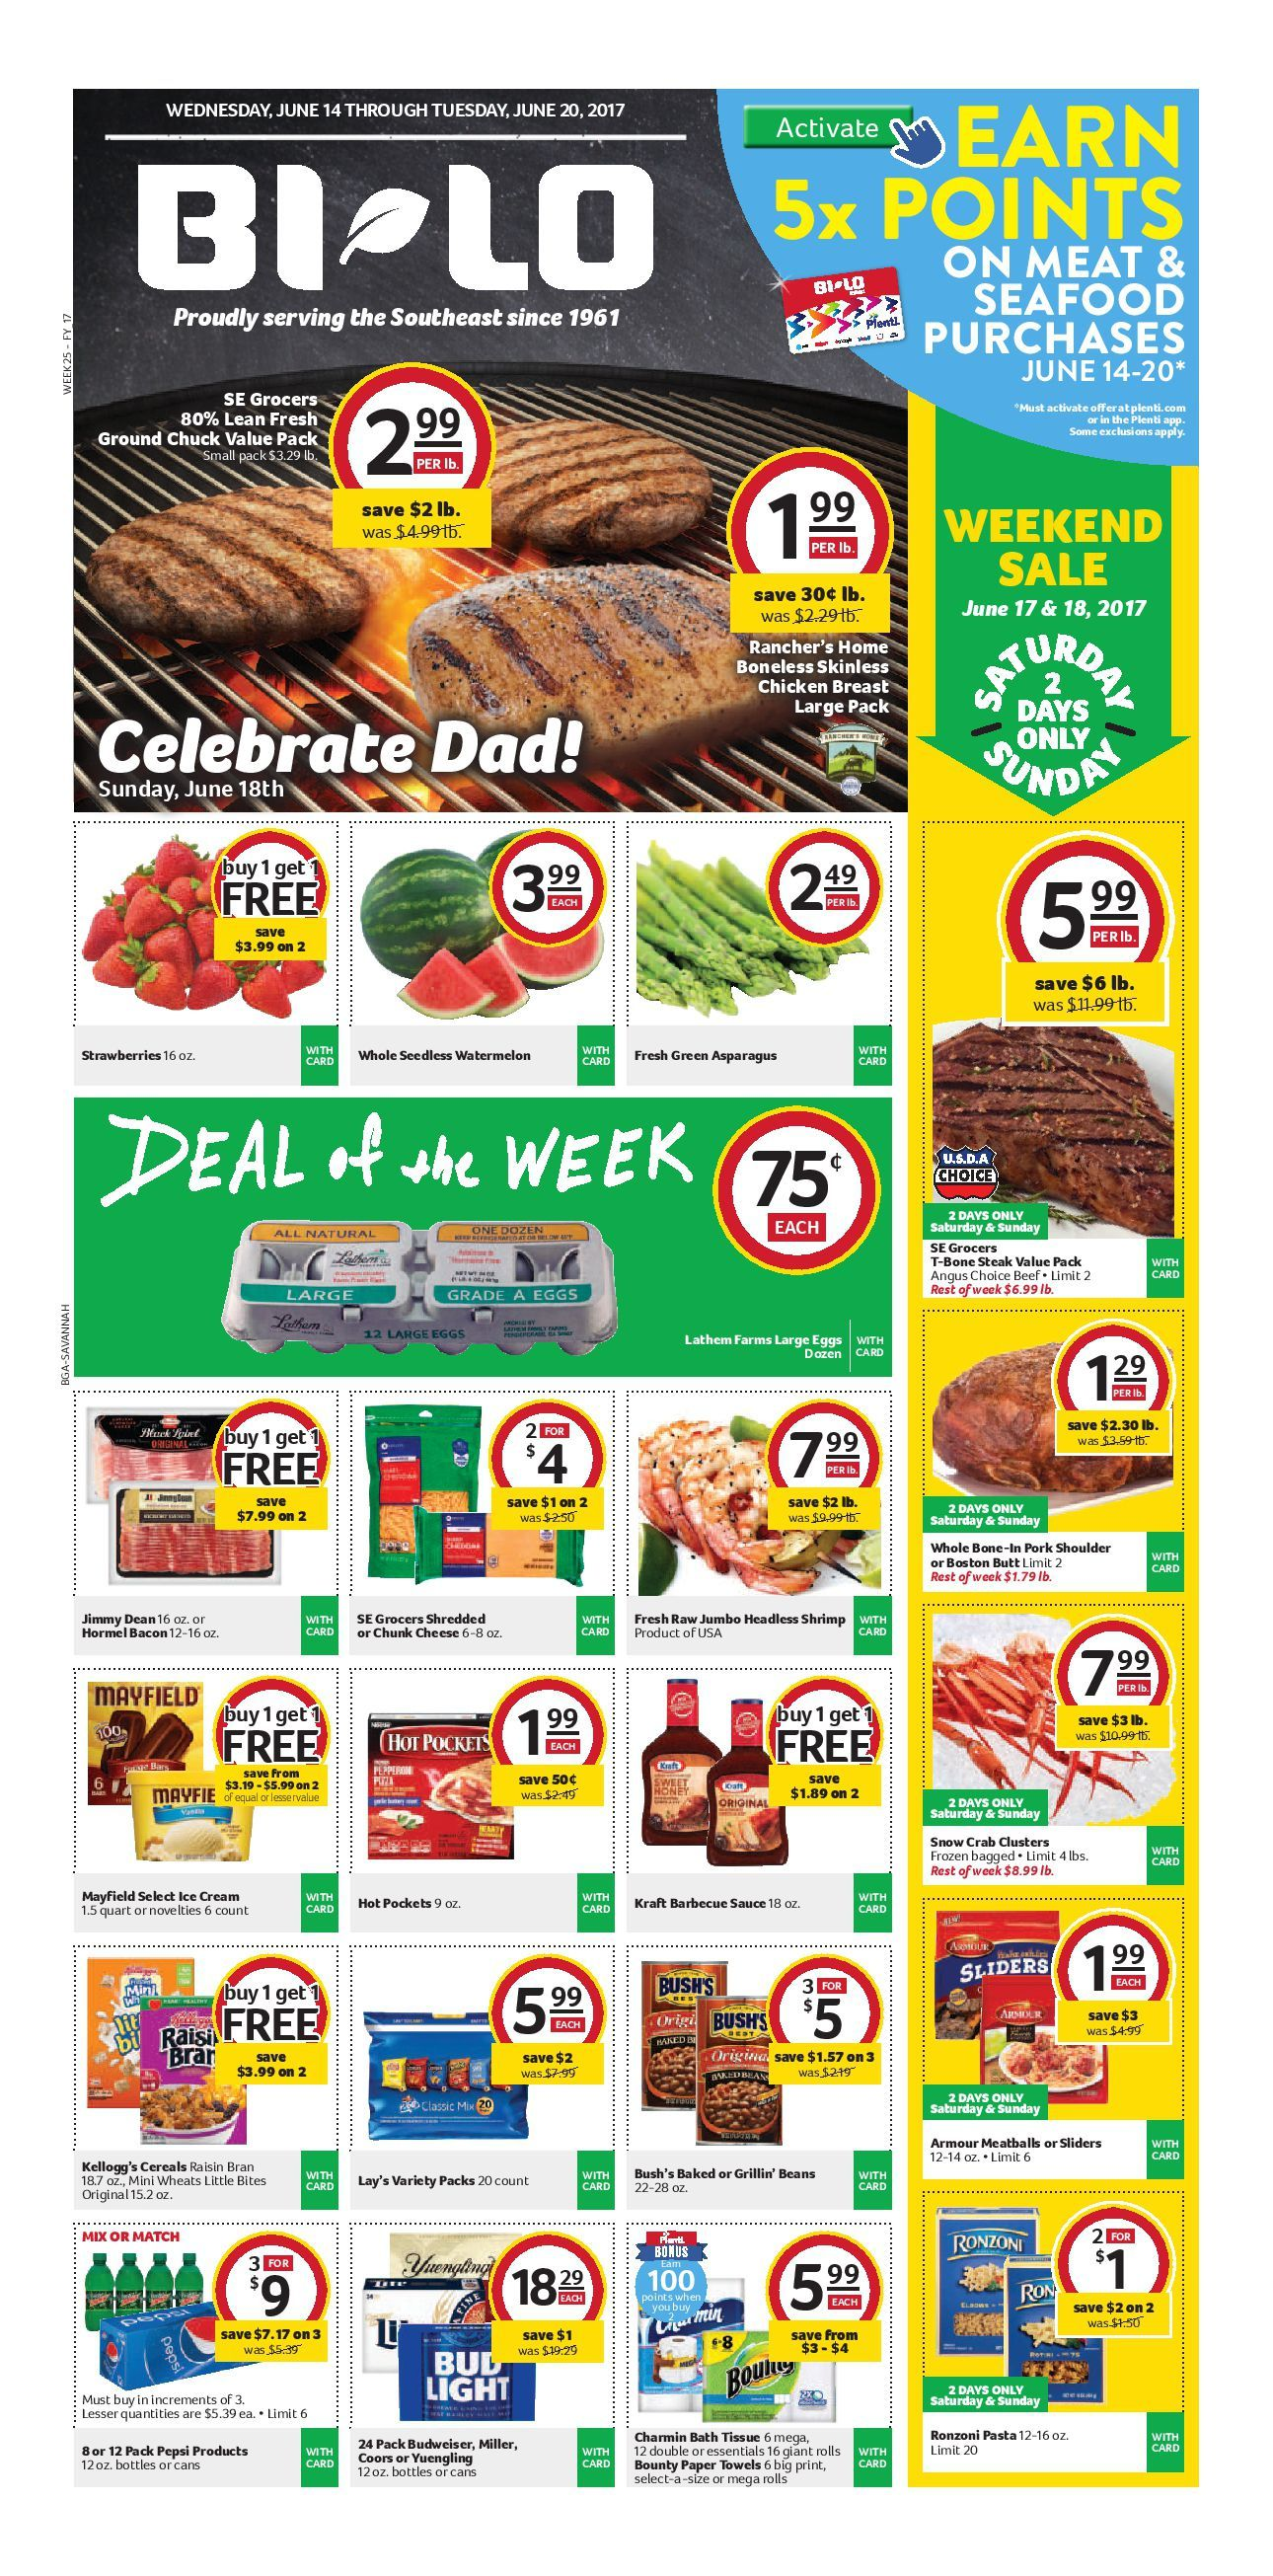 Bilo Weekly Ad June 14 20 2017 httpwwwolcatalogcomgrocery